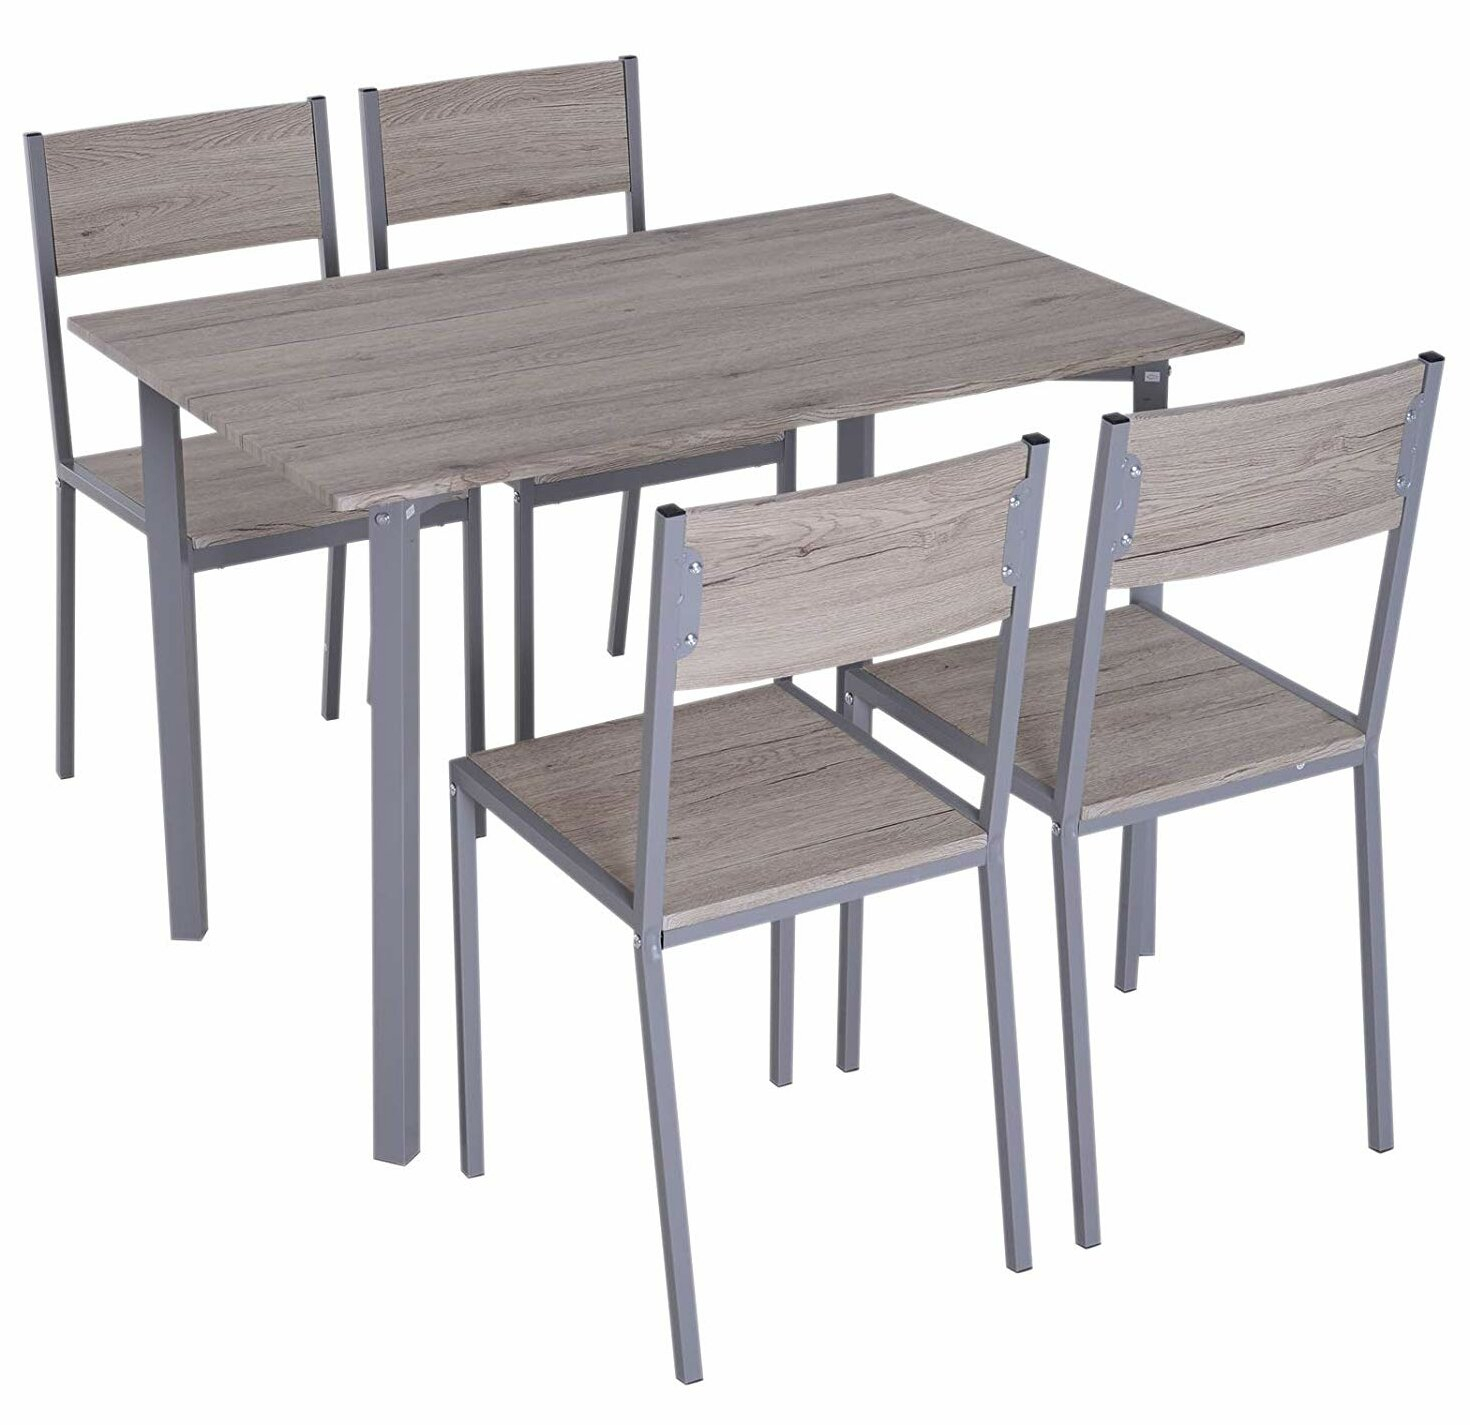 Legros Modern Compact 5 Piece Dining Set Inside Best And Newest Maloney 3 Piece Breakfast Nook Dining Sets (View 11 of 20)